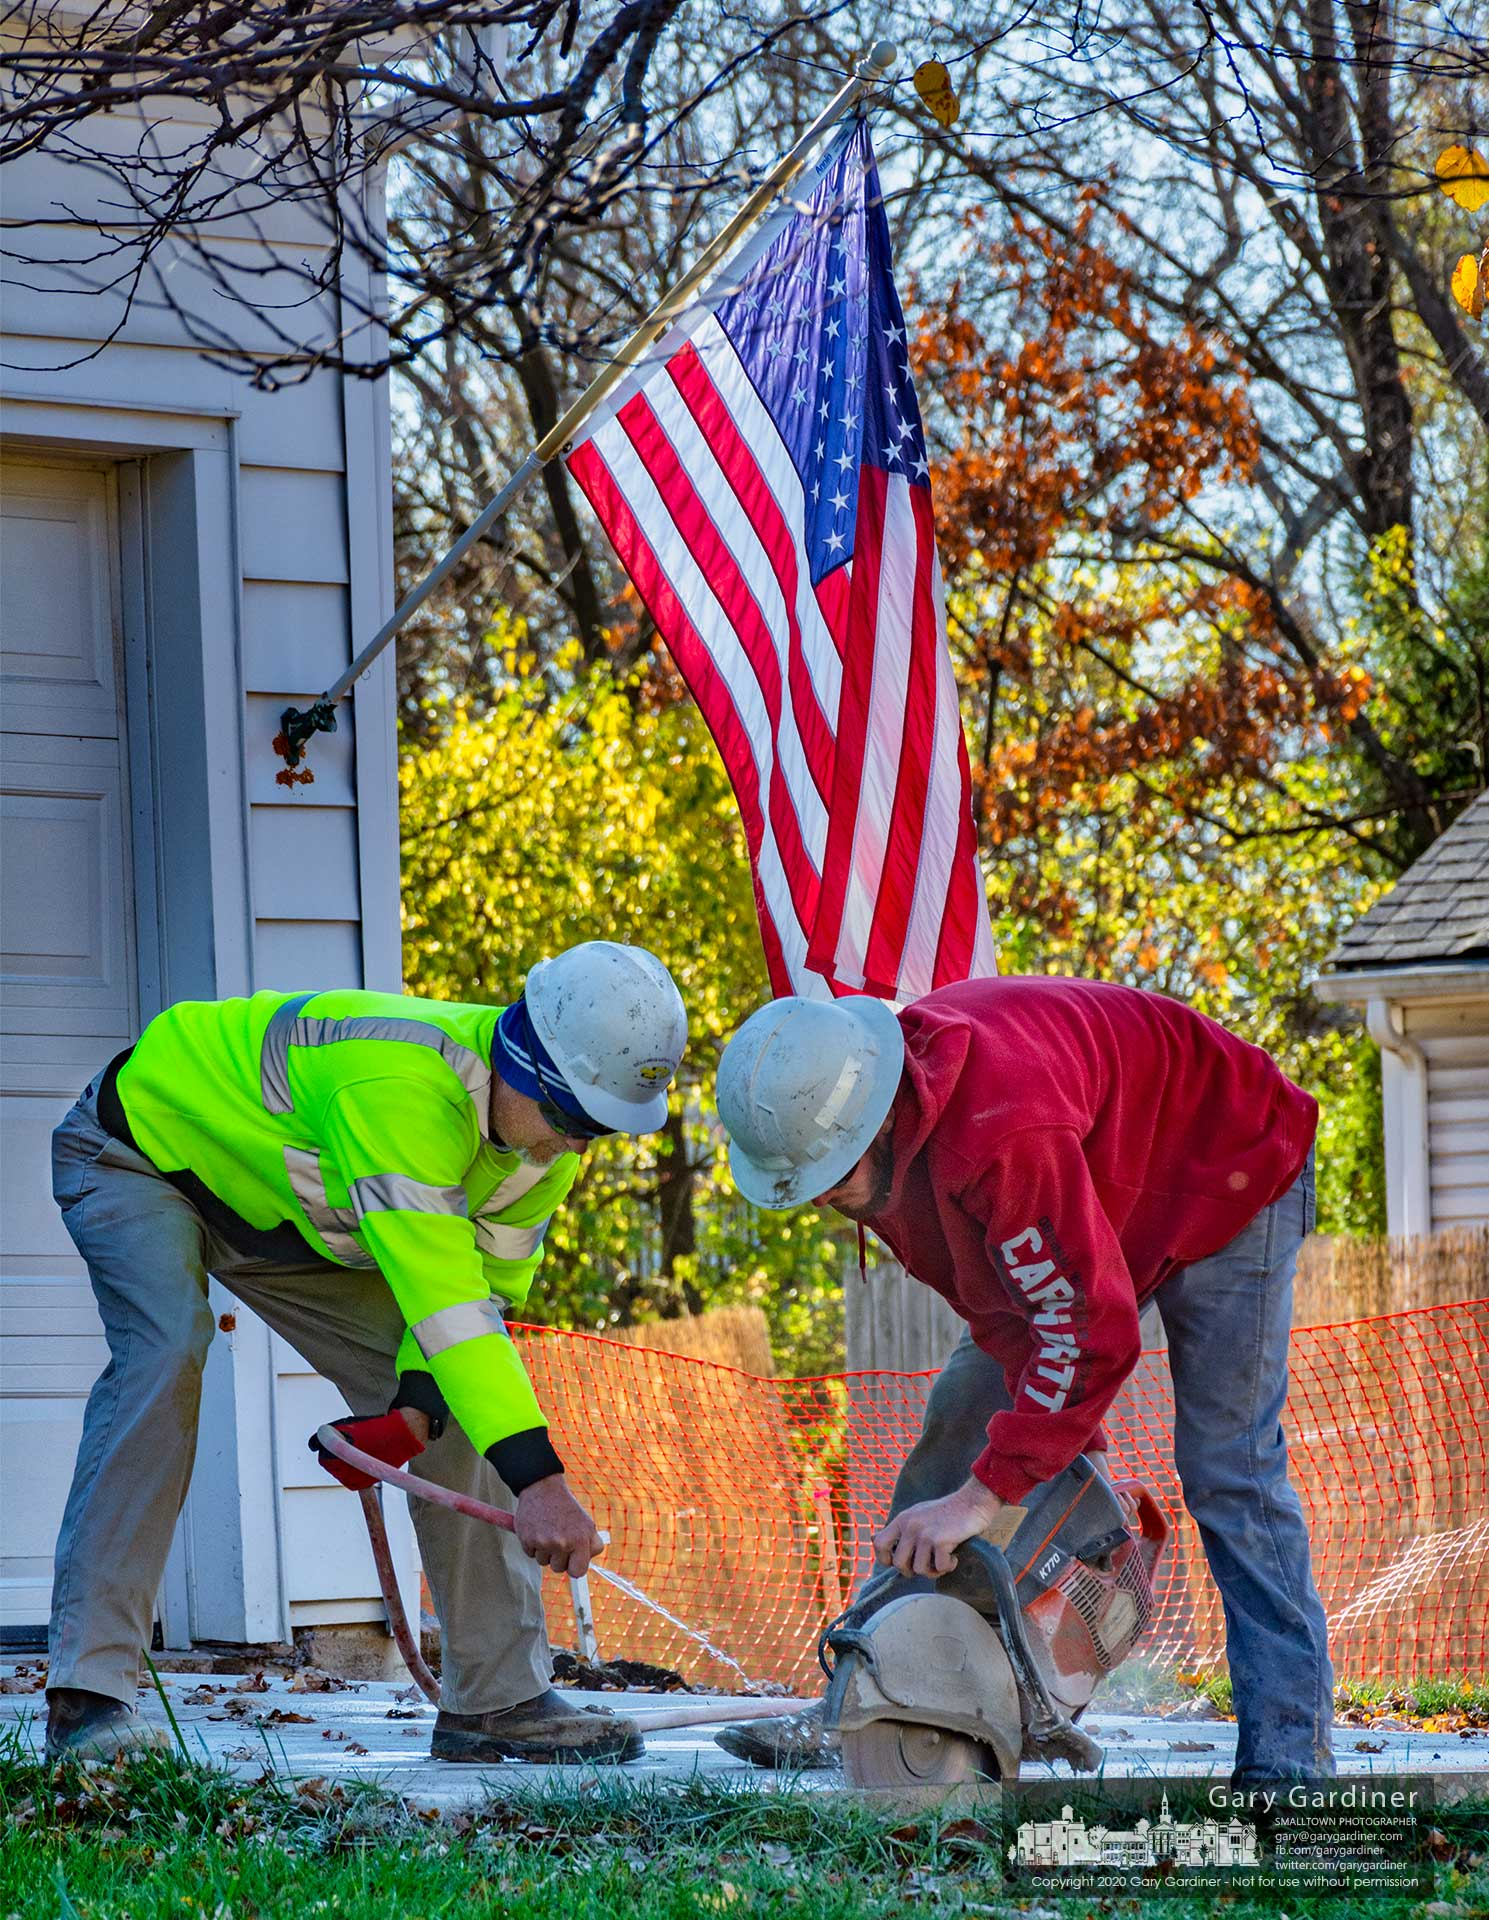 Contractors trim the end of a slab of concrete preparing it for a new slab to replace a section of driveway removed during upgrades on Russell Street in Westerville. My Final Photo for Nov. 12, 2020.